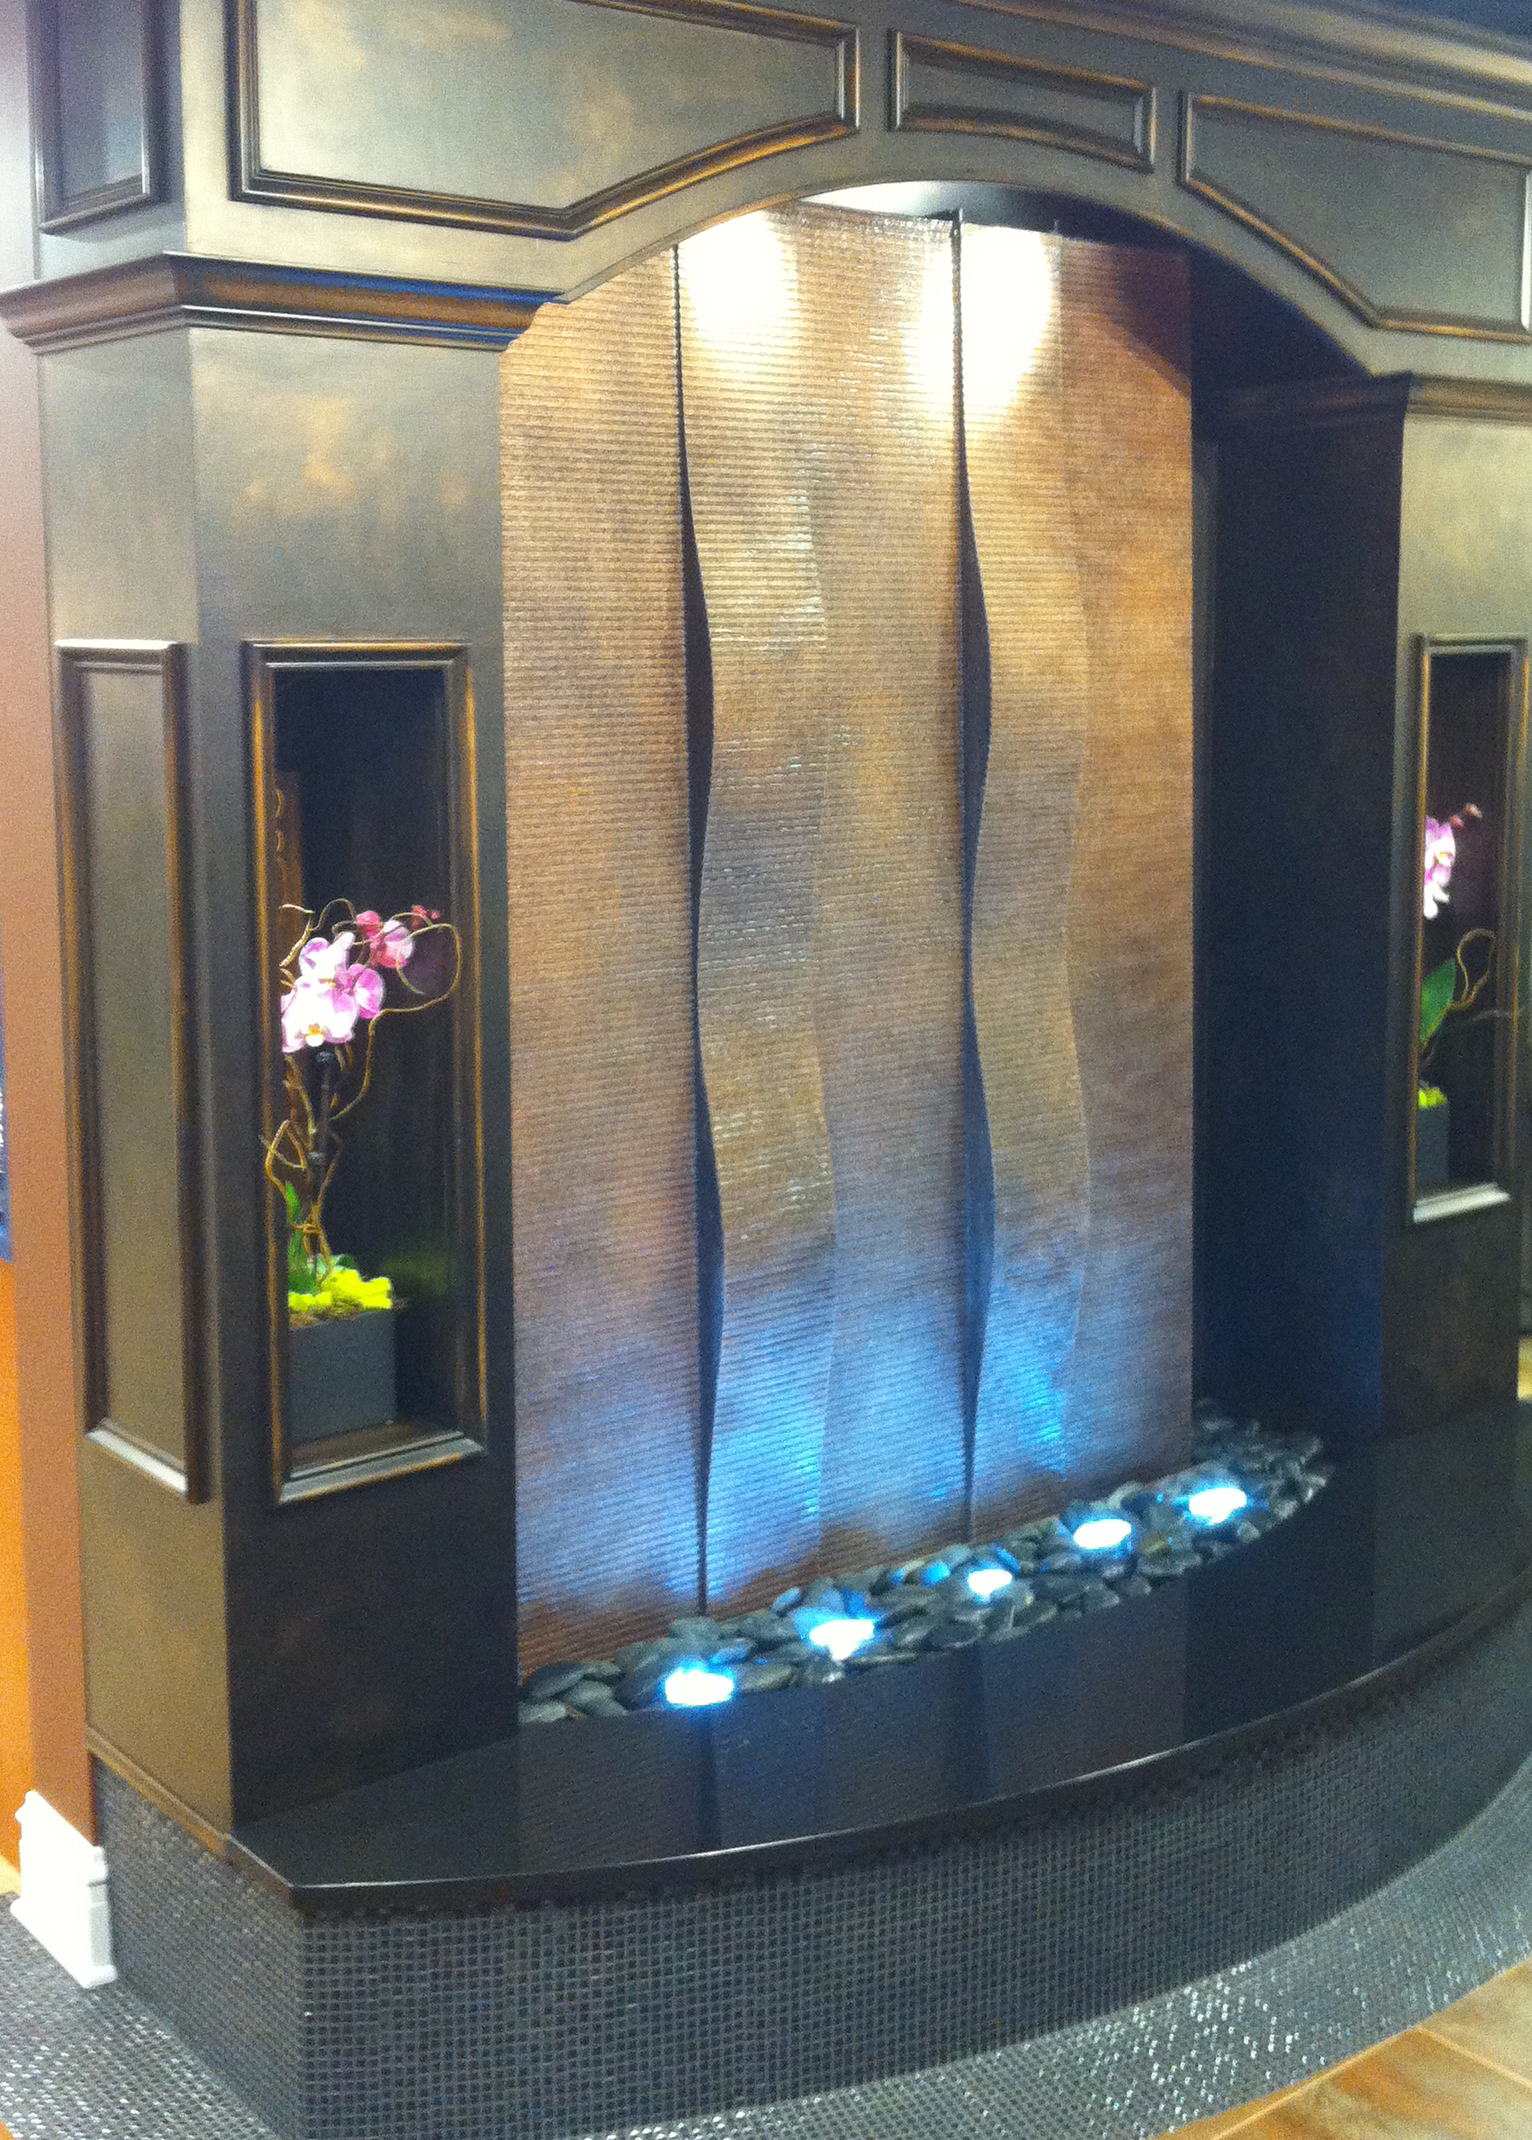 Aquafall Water Walls: Indoor Water Wall Fountains by Midwest Tropical